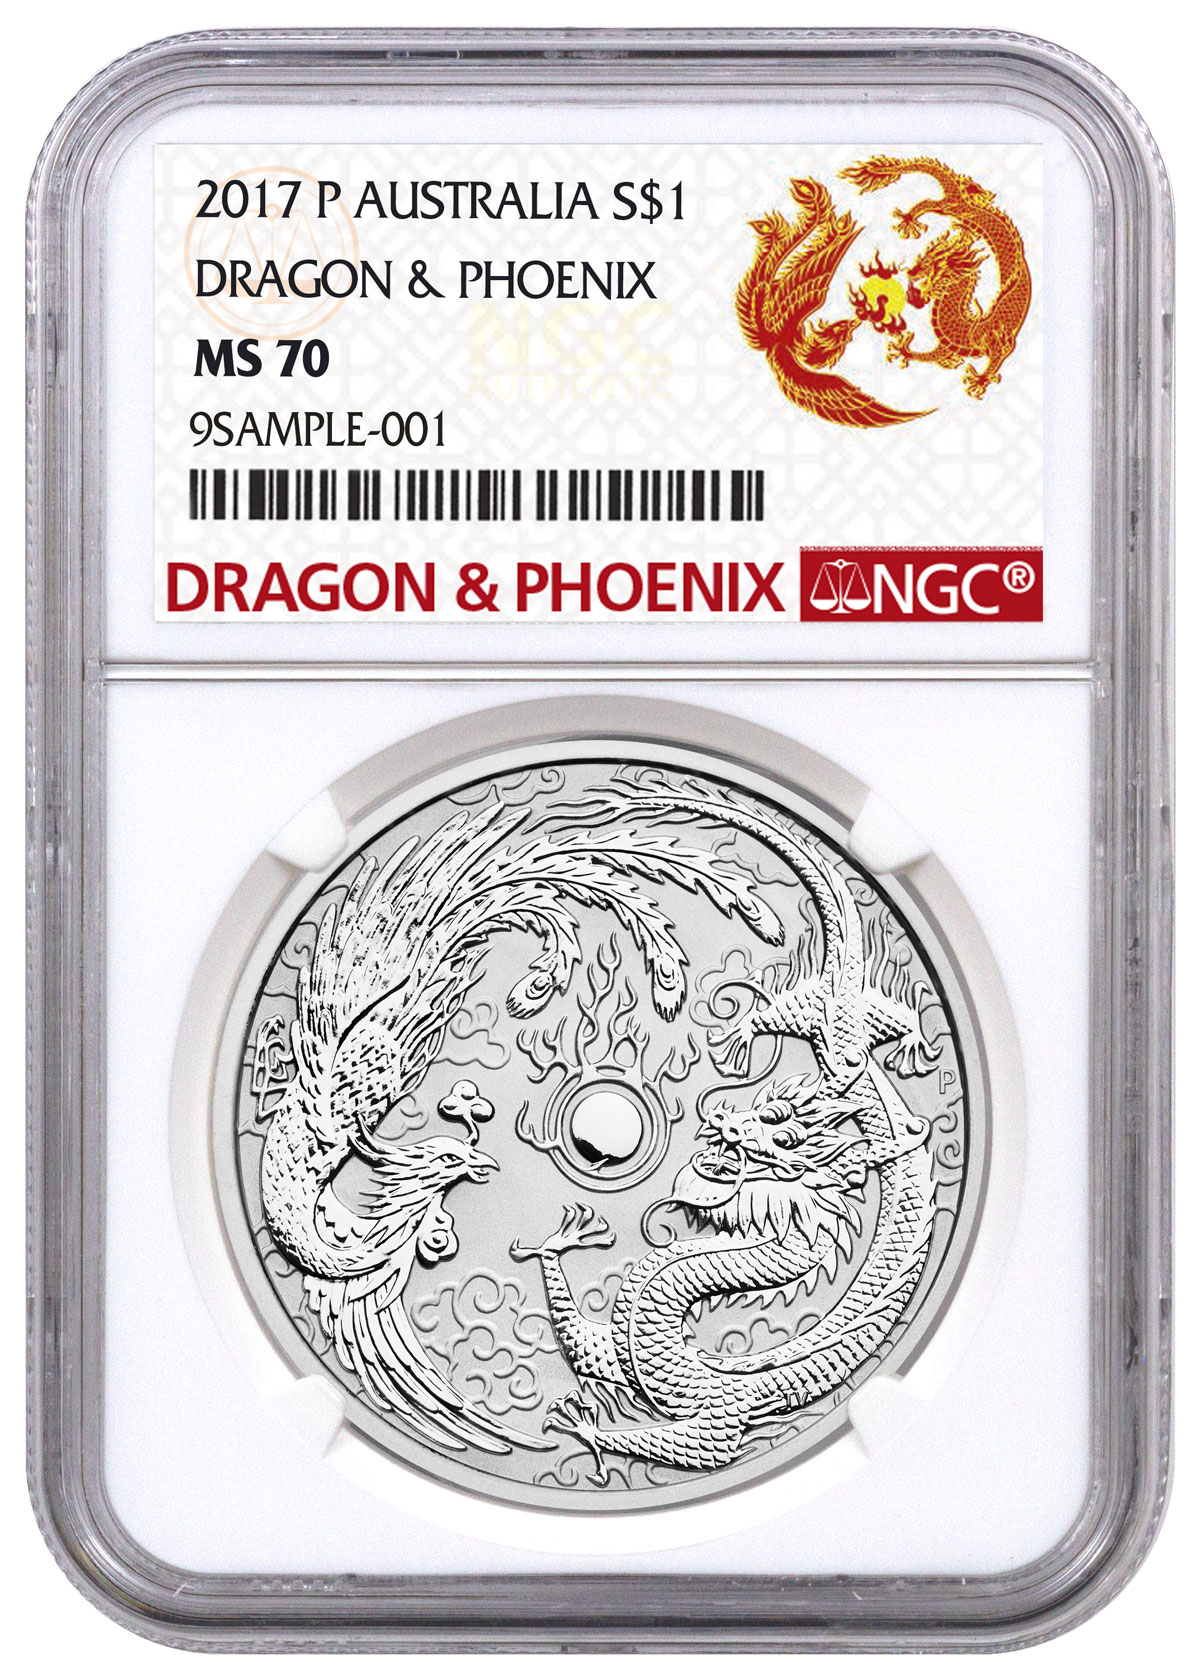 2017-P Australia 1 oz Silver Dragon & Phoenix $1 Coin NGC MS70 (Exclusive Dragon & Phoenix Label)